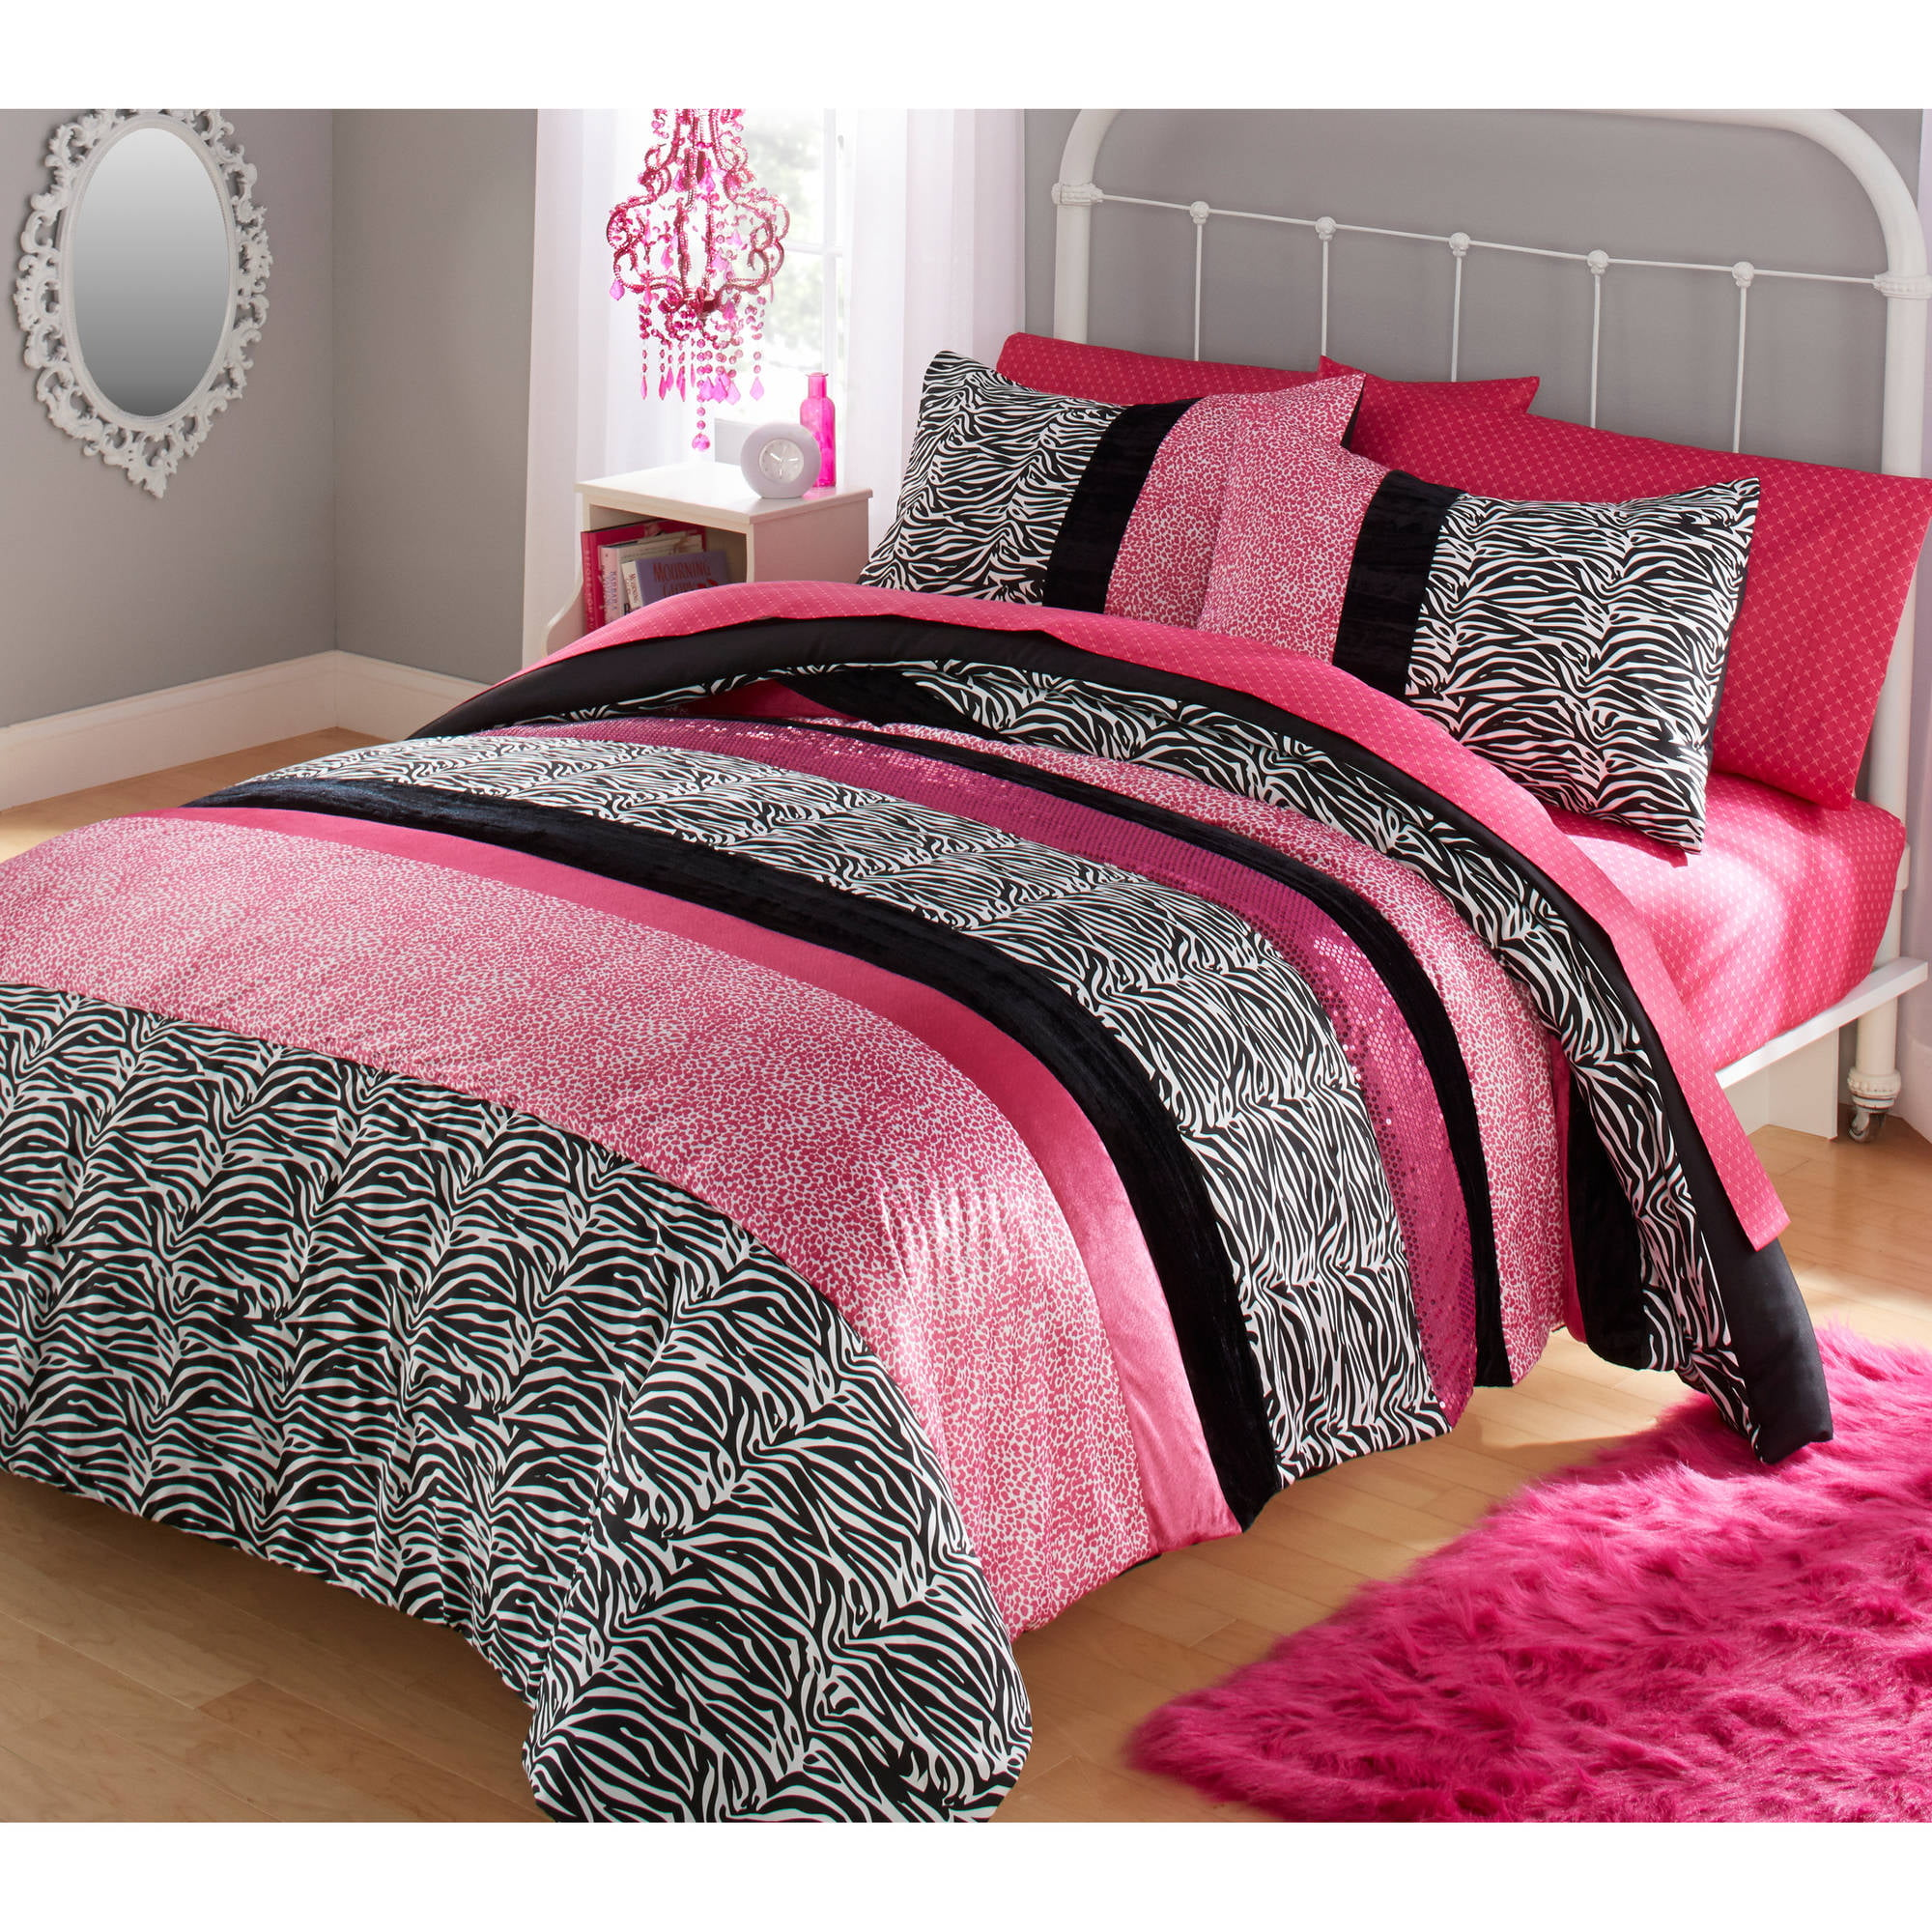 Your Zone Zebra Bedding Comforter Set - Walmart.com